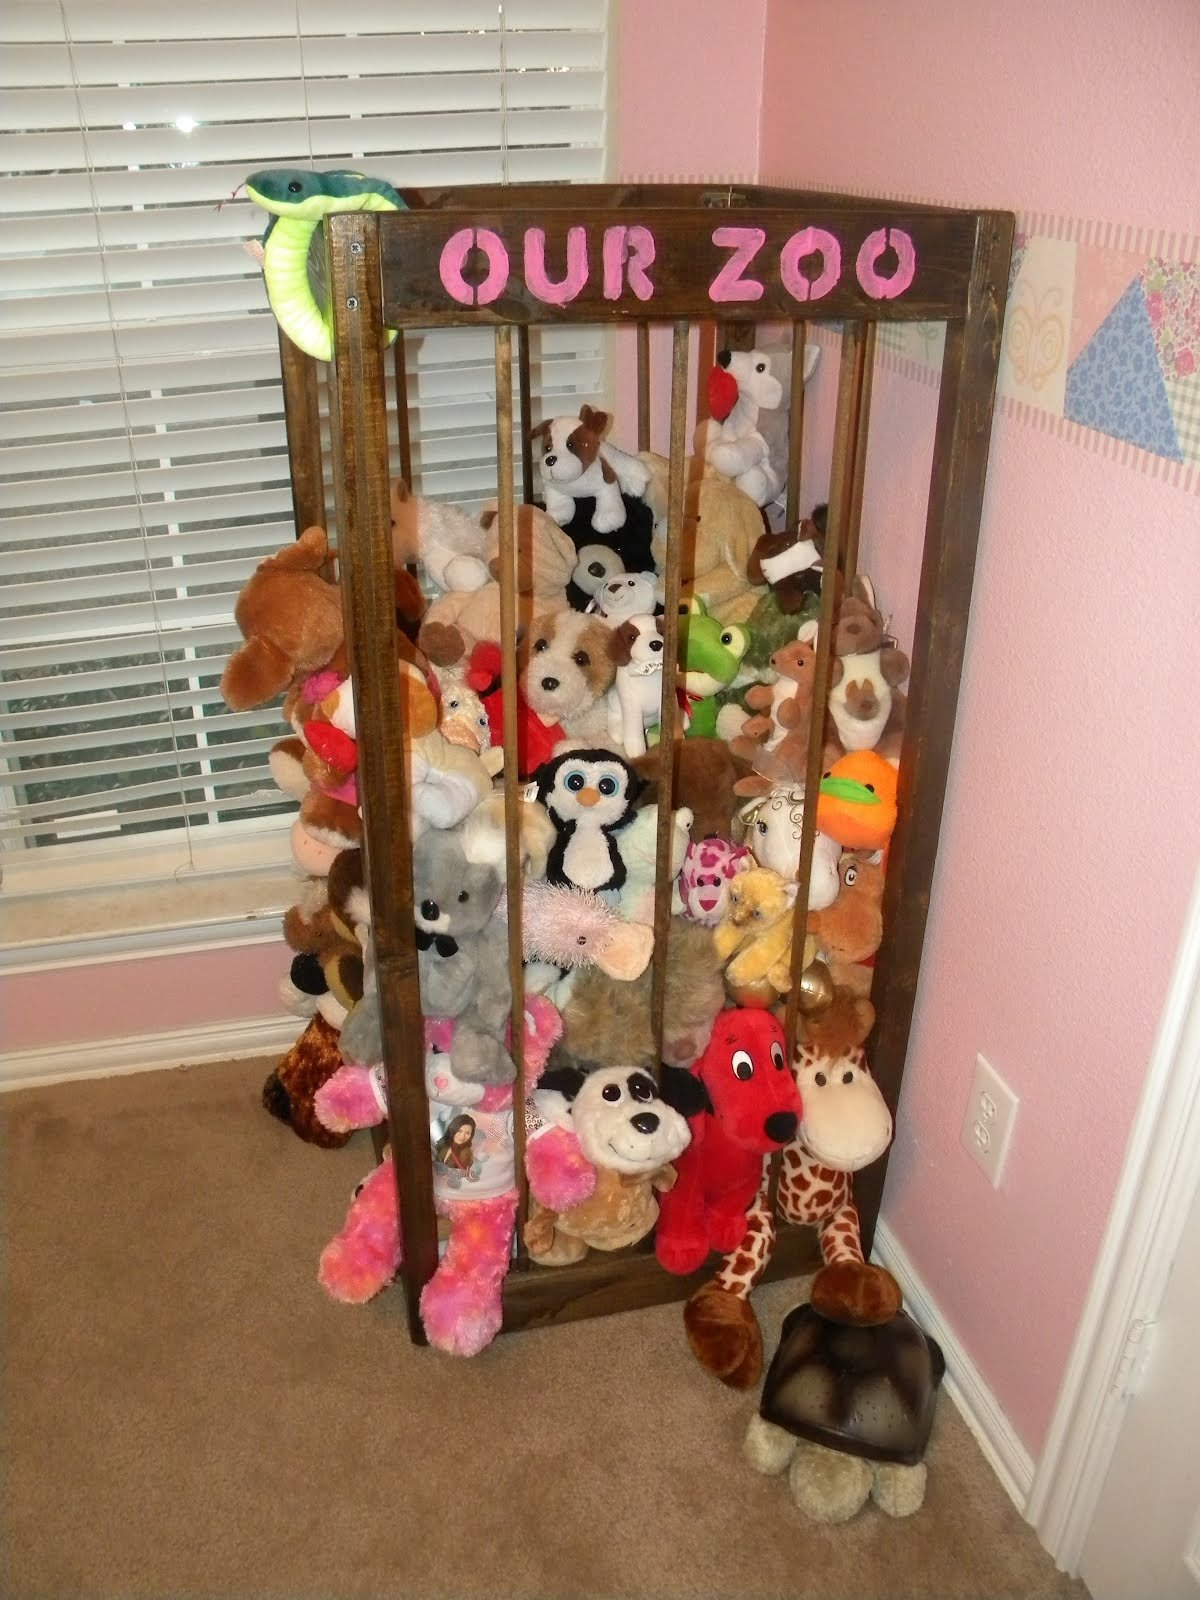 10 Spectacular Ideas For Stuffed Animal Storage zoo great idea for stuffed animal storage fun things to do for my 1 2021